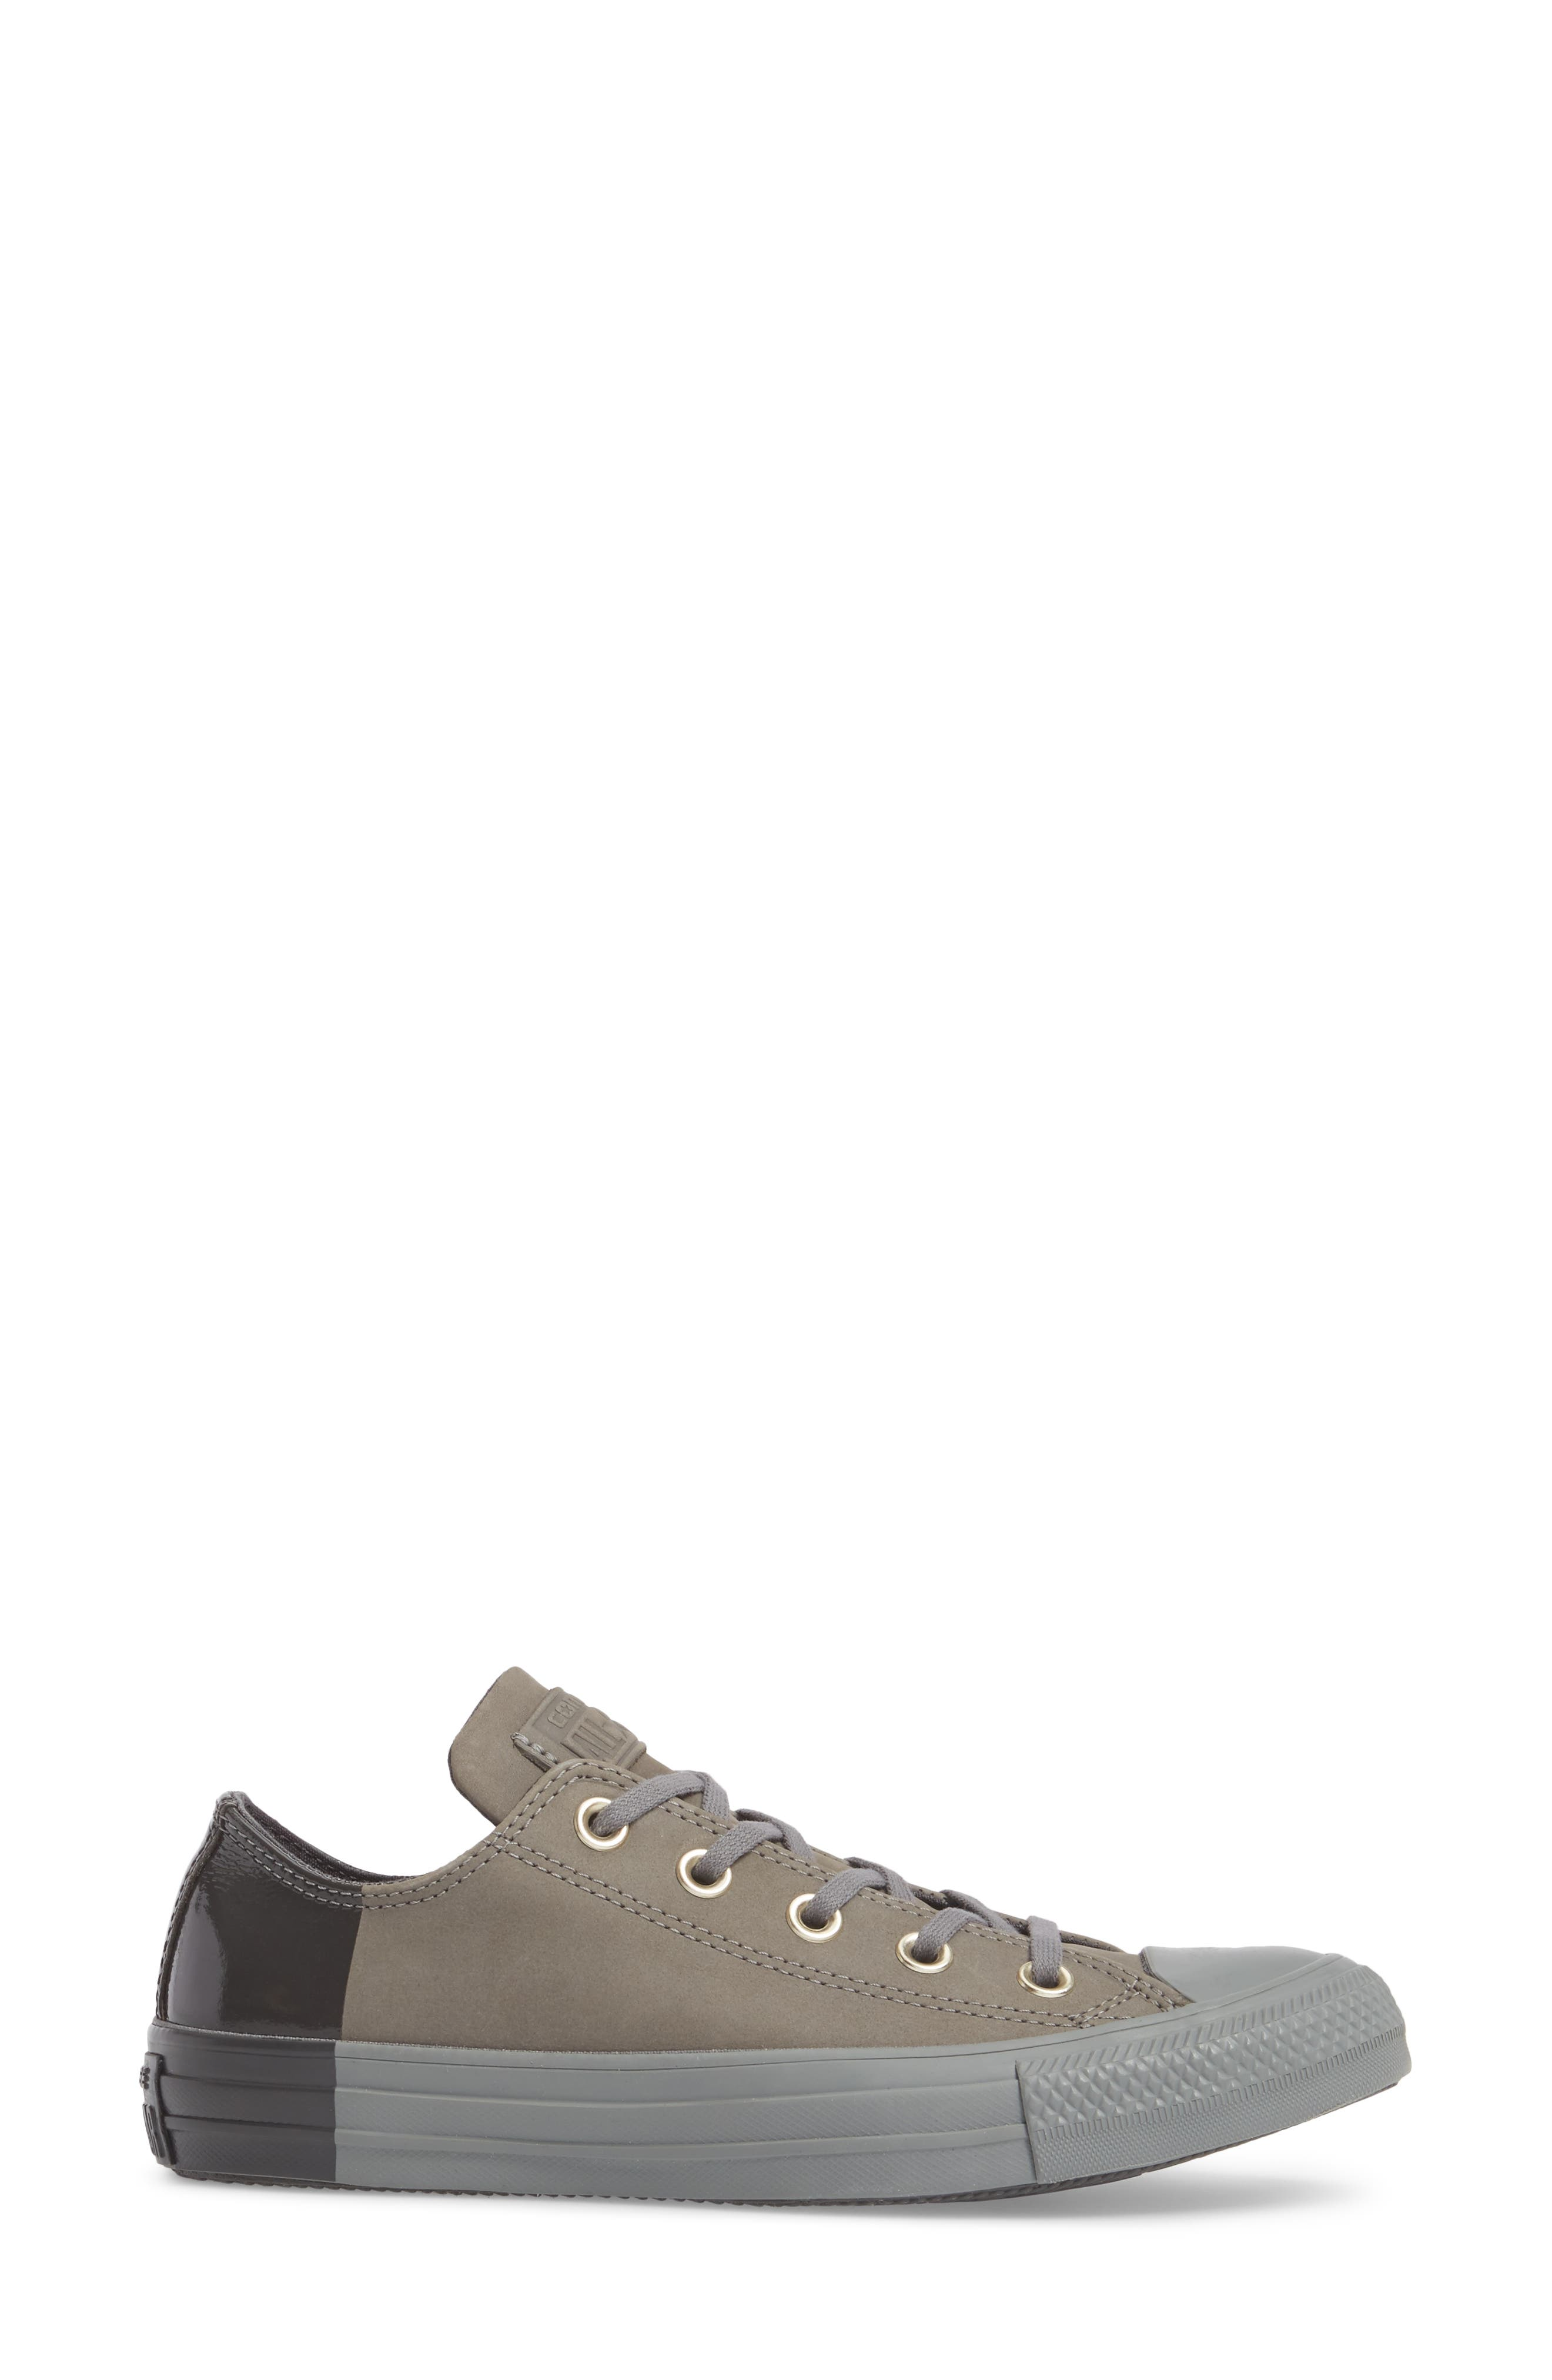 All Star<sup>®</sup> Nubuck OX Low Top Sneaker,                             Alternate thumbnail 3, color,                             028